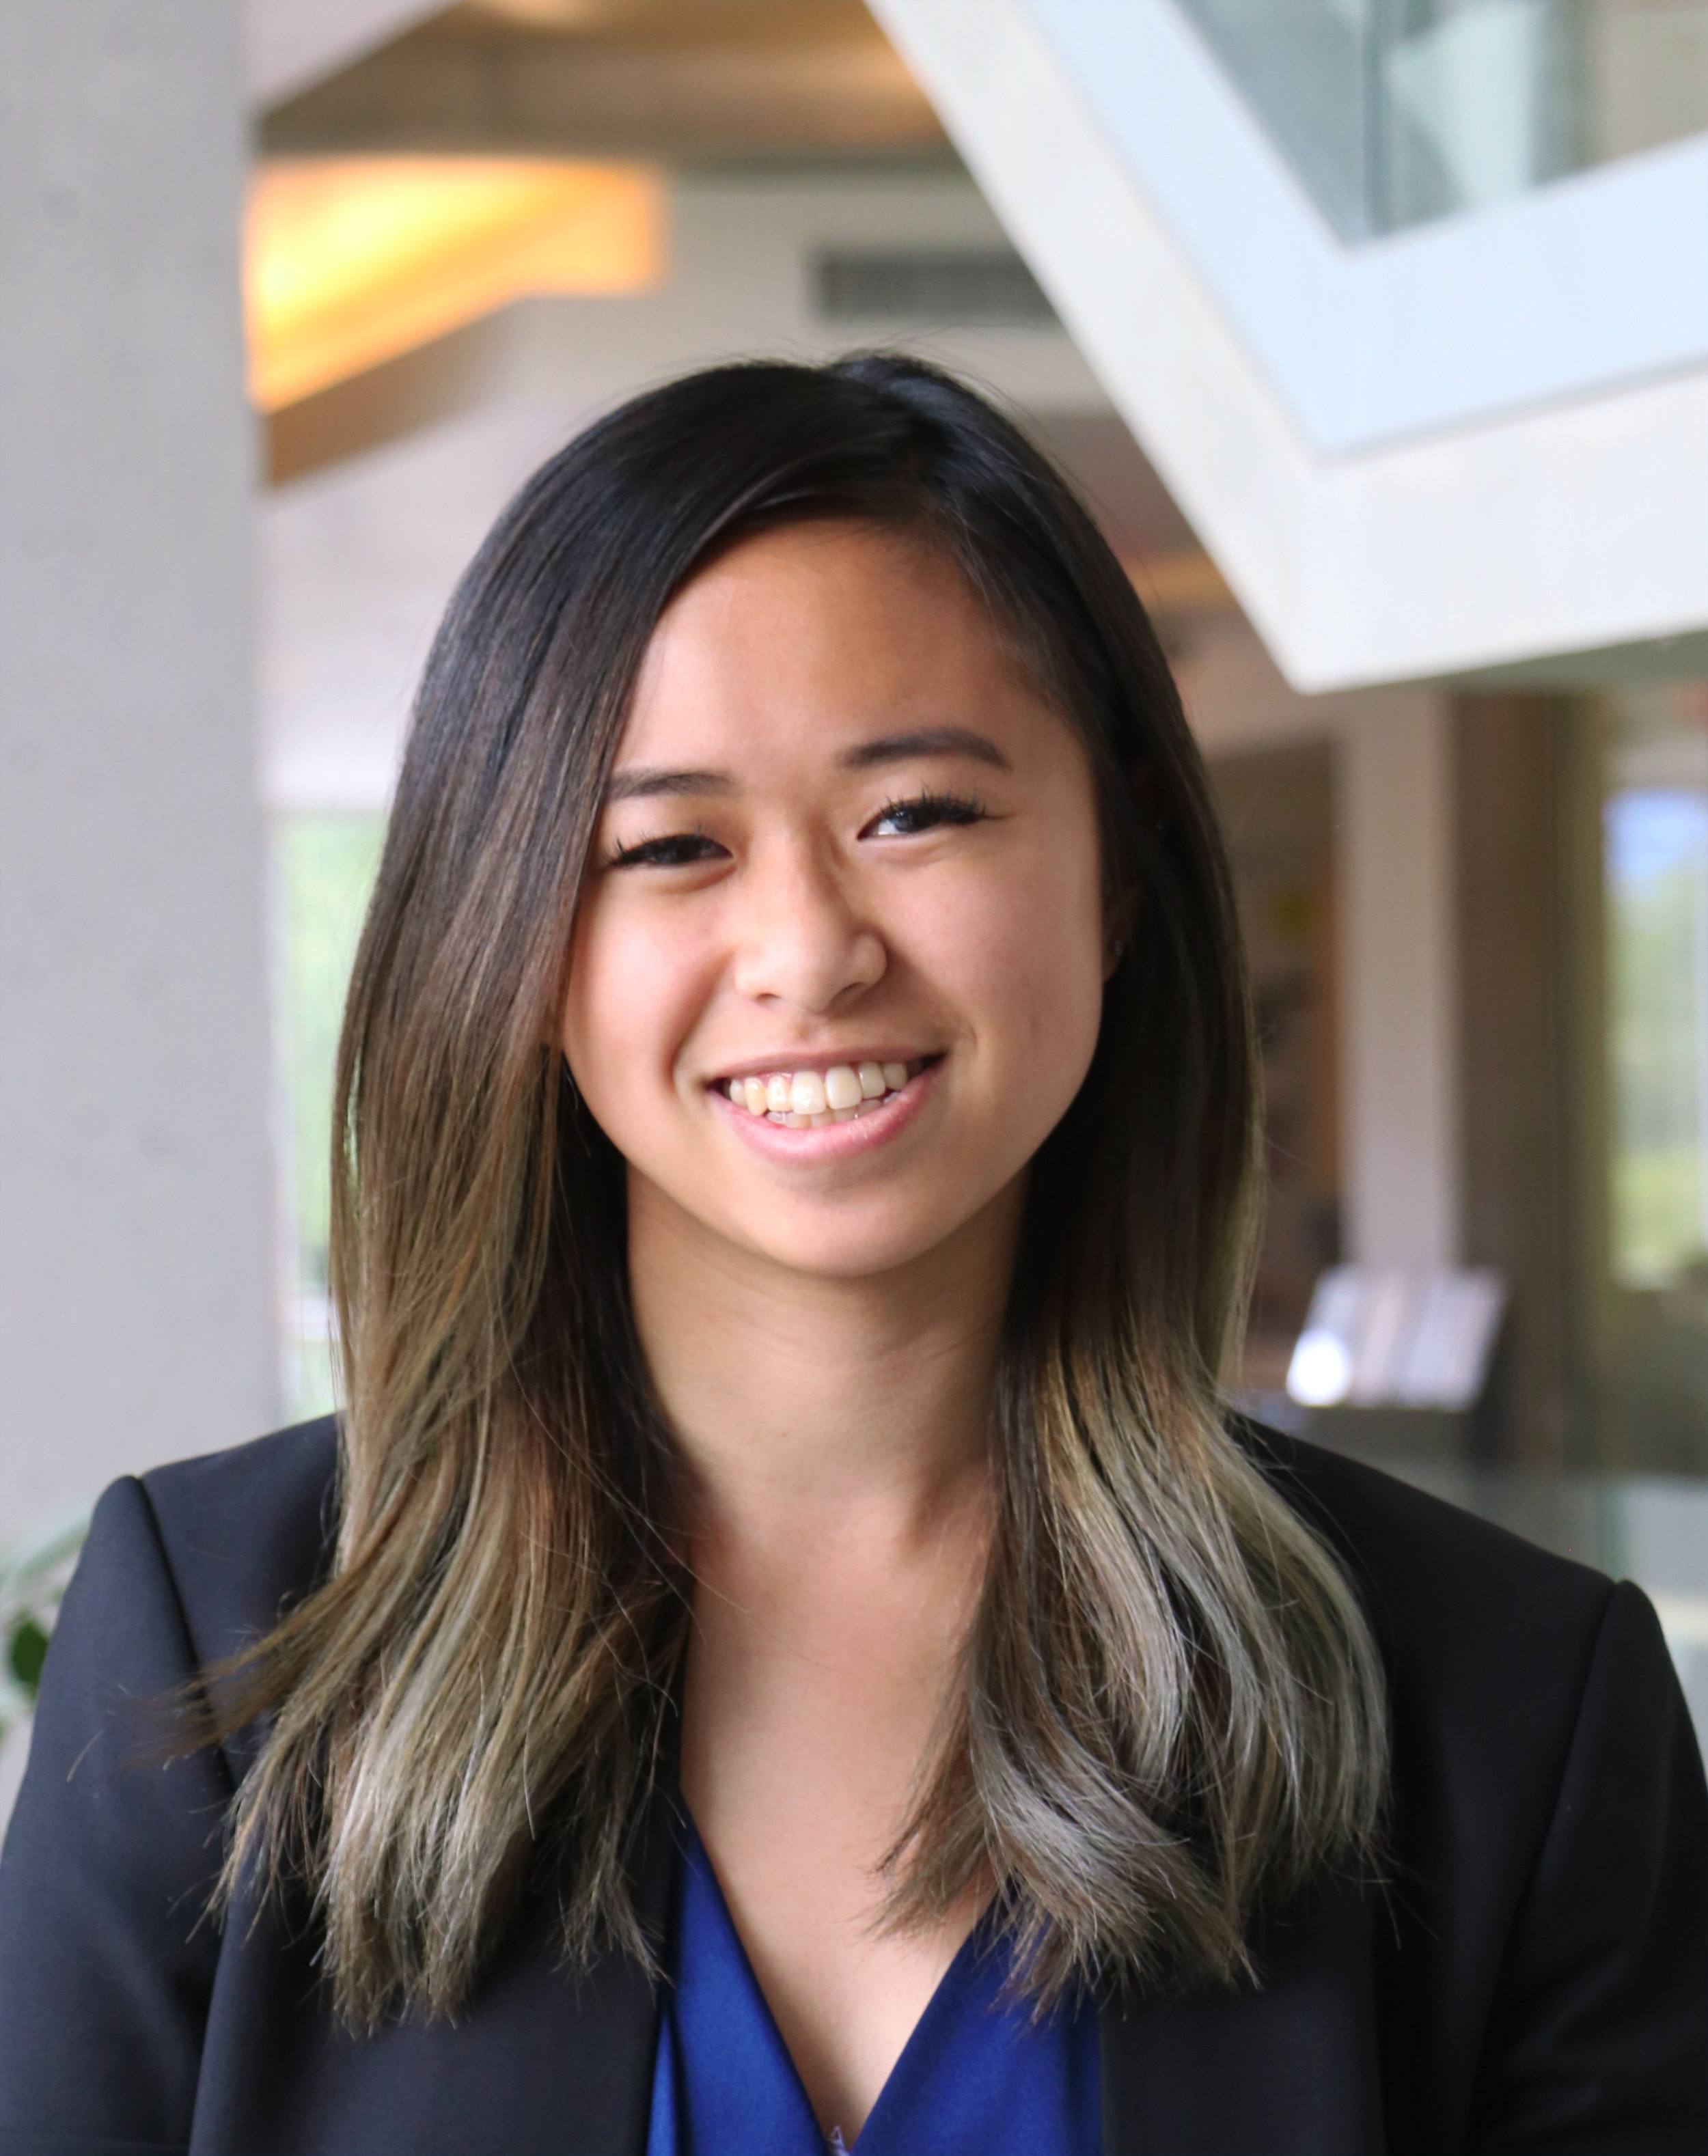 Alicia Heng  Co-Director of Events   What are you excited to do in your term?  I'm excited to learn more about event planning as well as help facilitate mentorship and connections.   What emoji best describes you?  🤪 because i'm living my best life